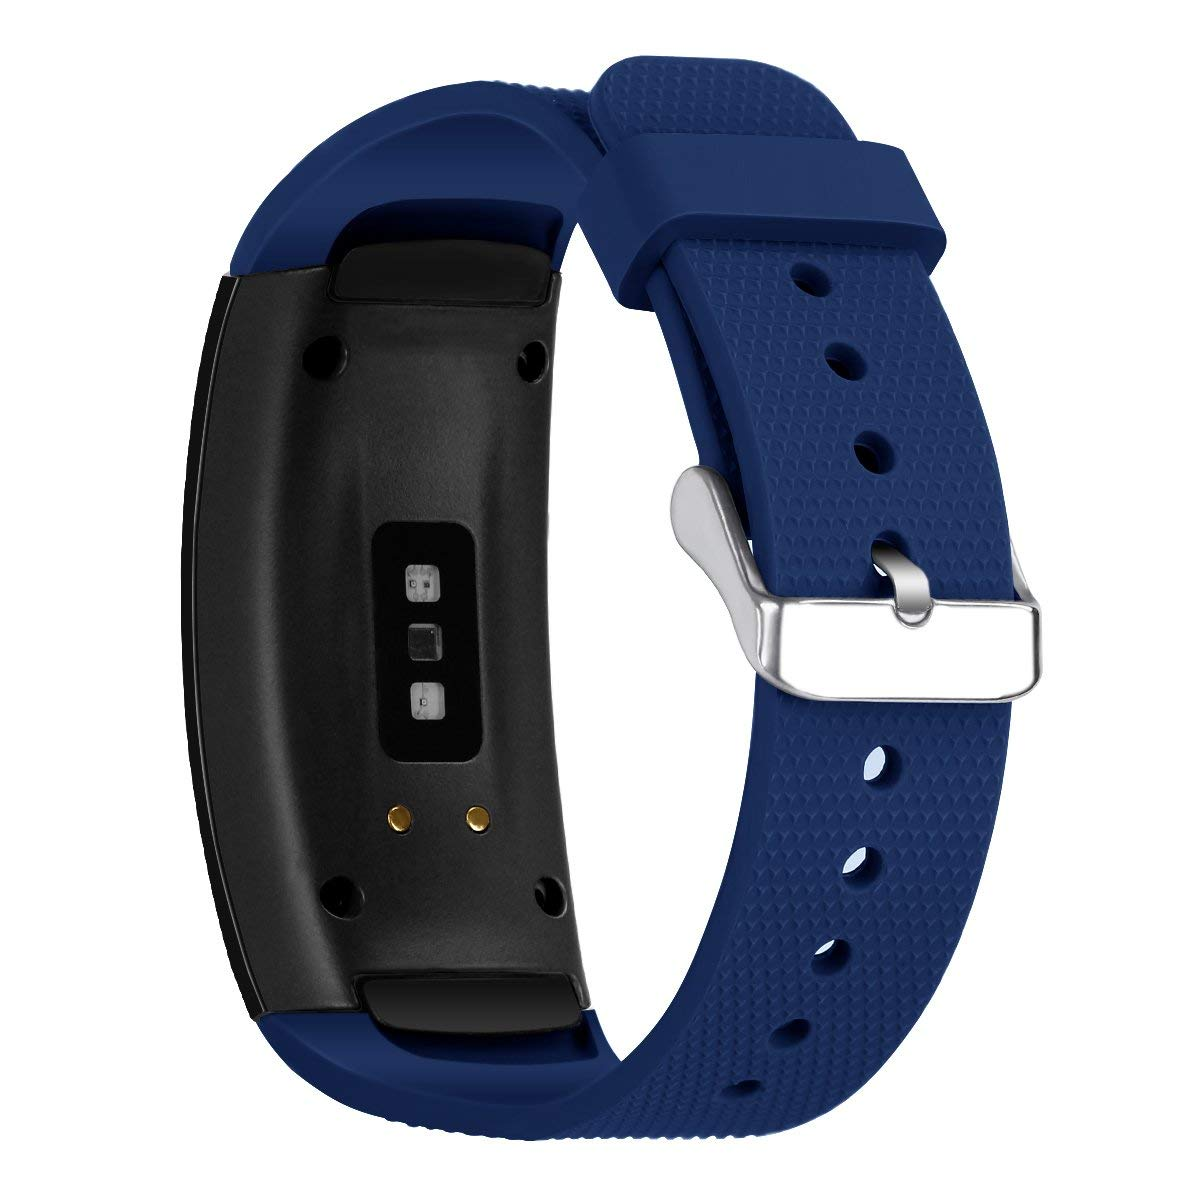 Silicone Band for Samsung Gear Fit 2, Yemoo Breathable Sport Wristband Replacement Band for Samsung Gear Fit 2 / Fit 2 Pro Navy